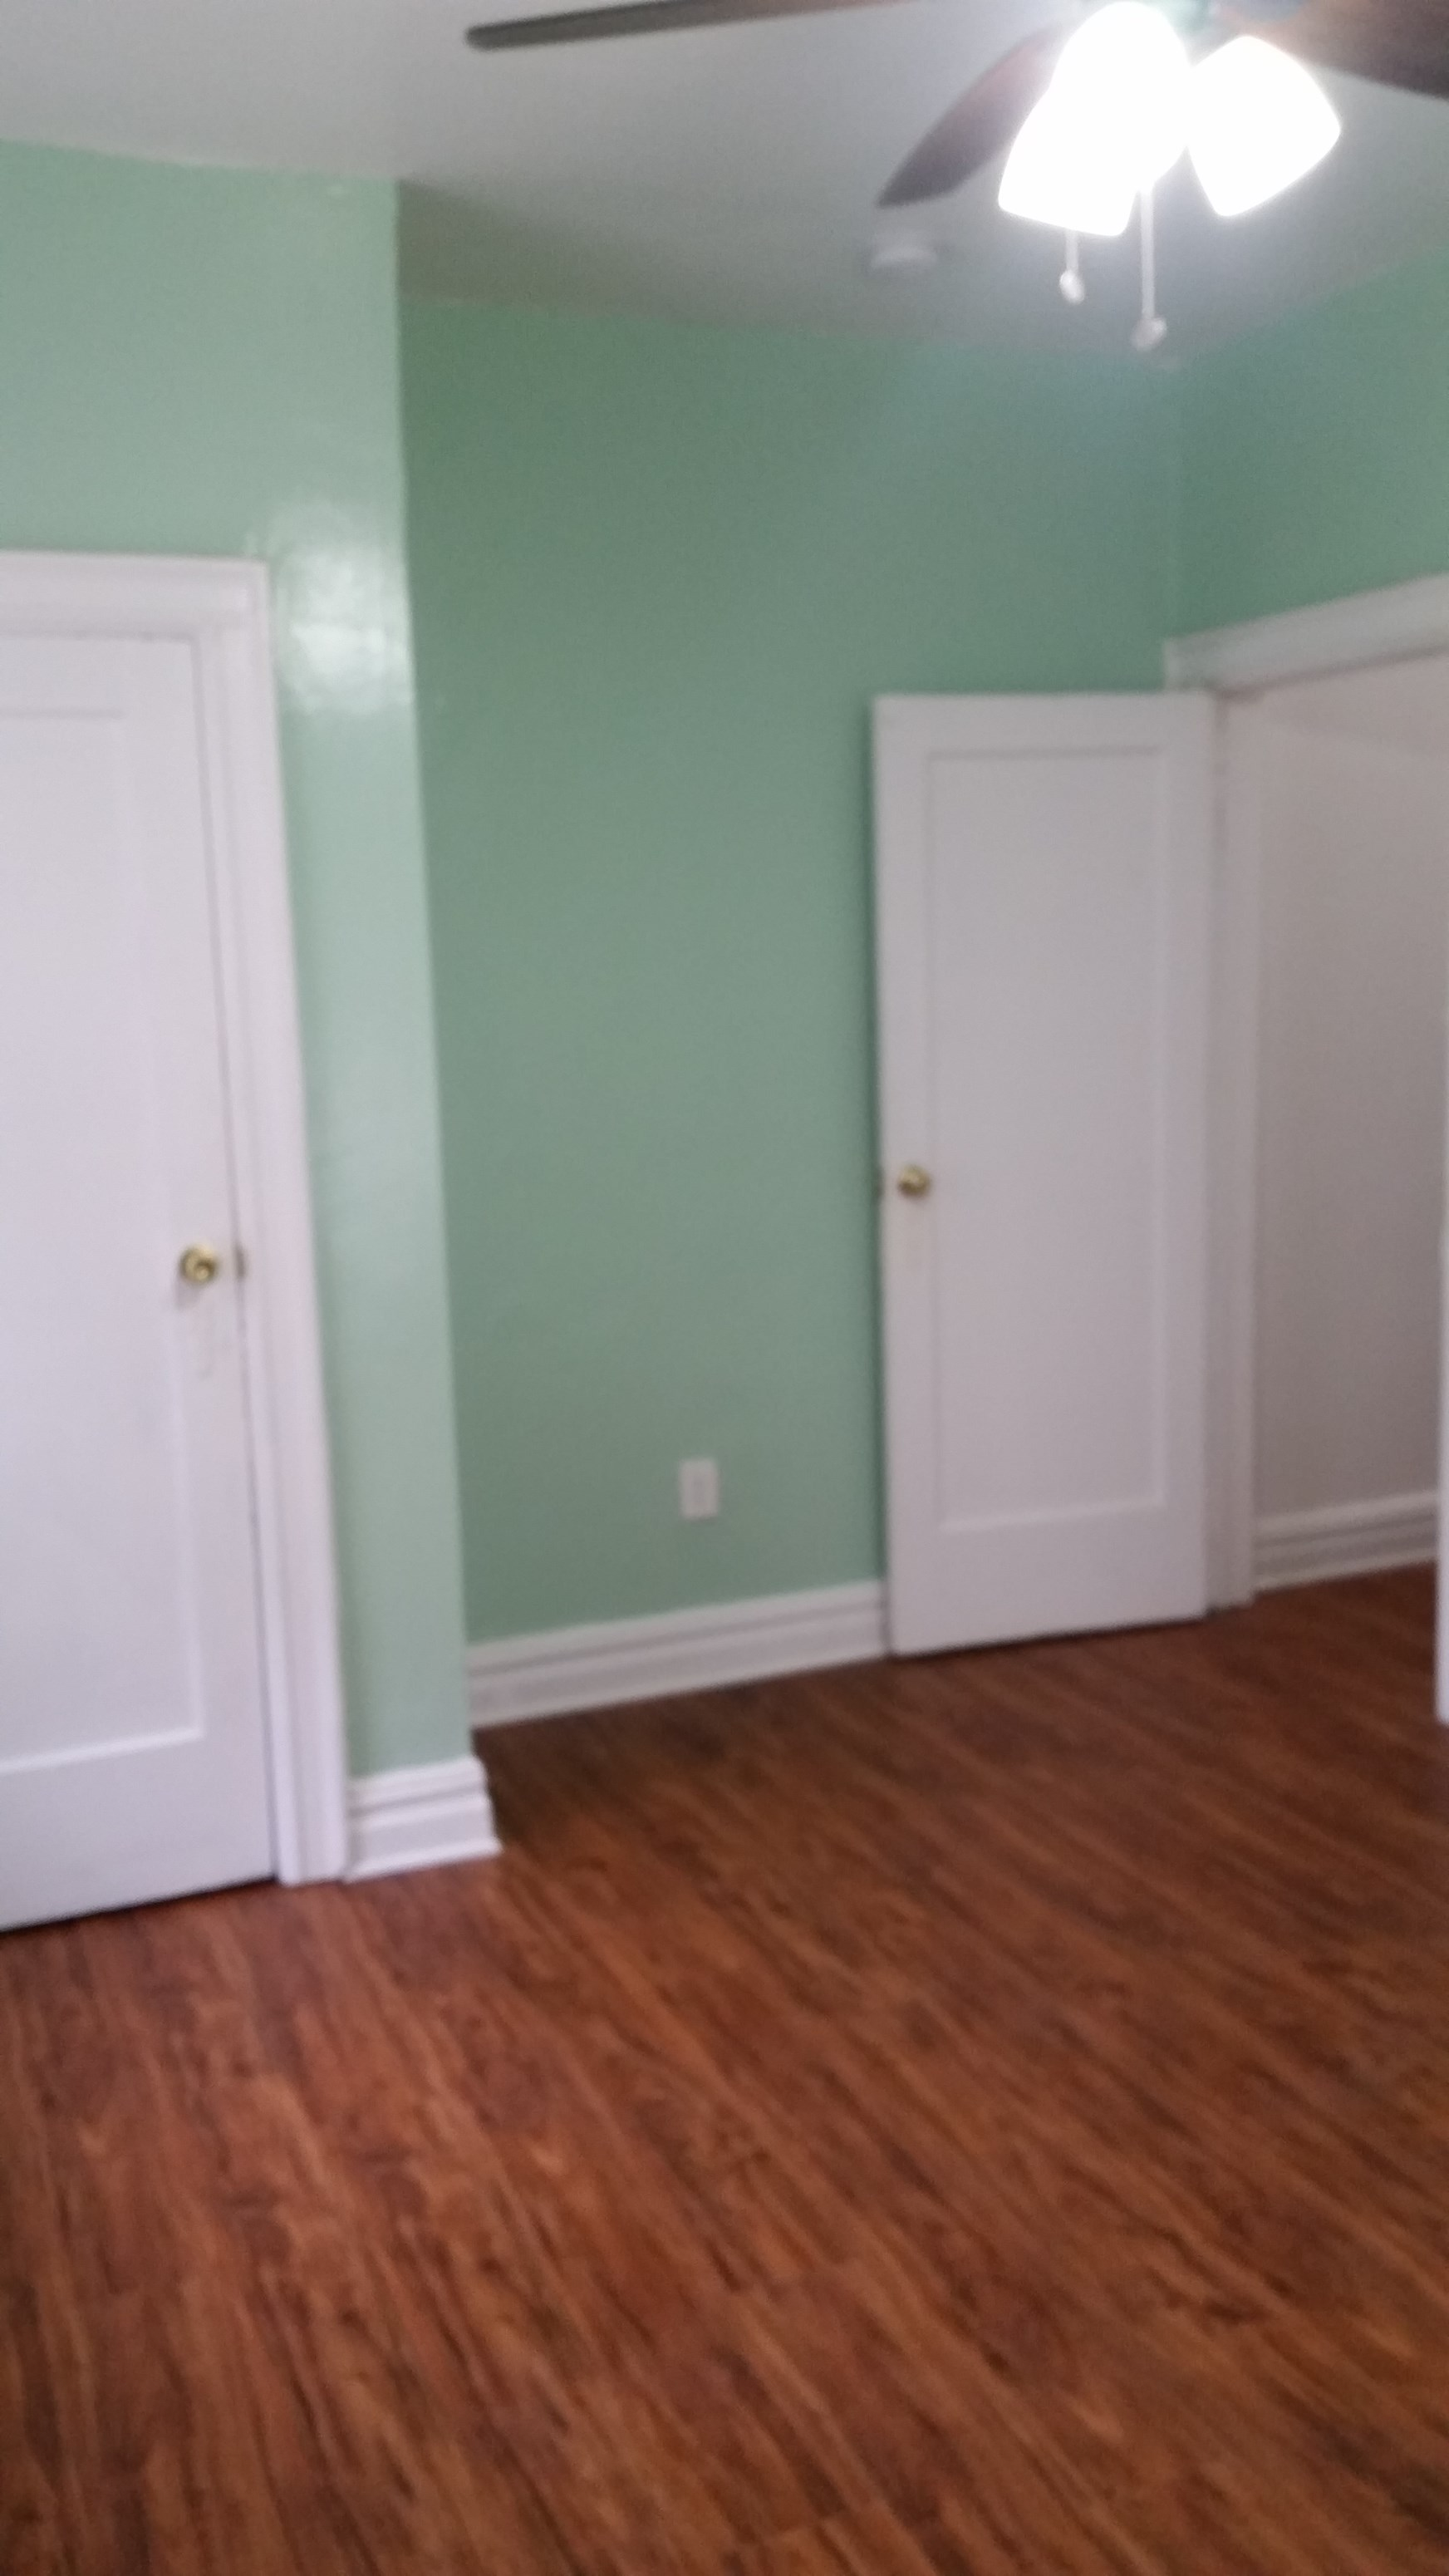 rooms for rent in new jersey apartments flats commercial space